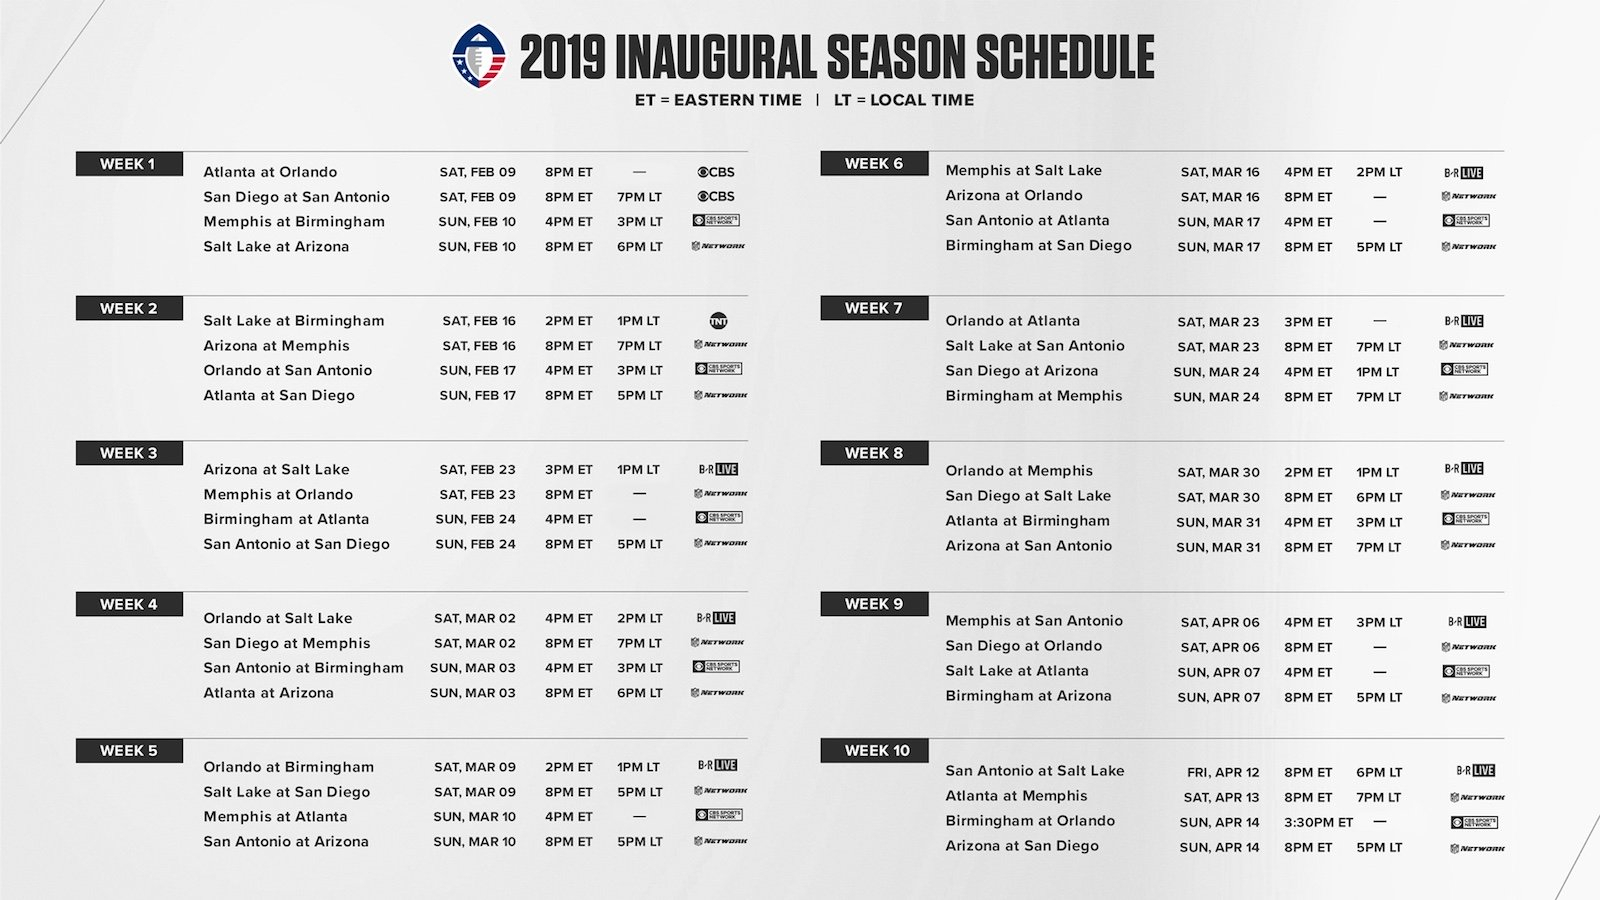 Aaf Football: 2019 Season Schedule For Alliance Of American